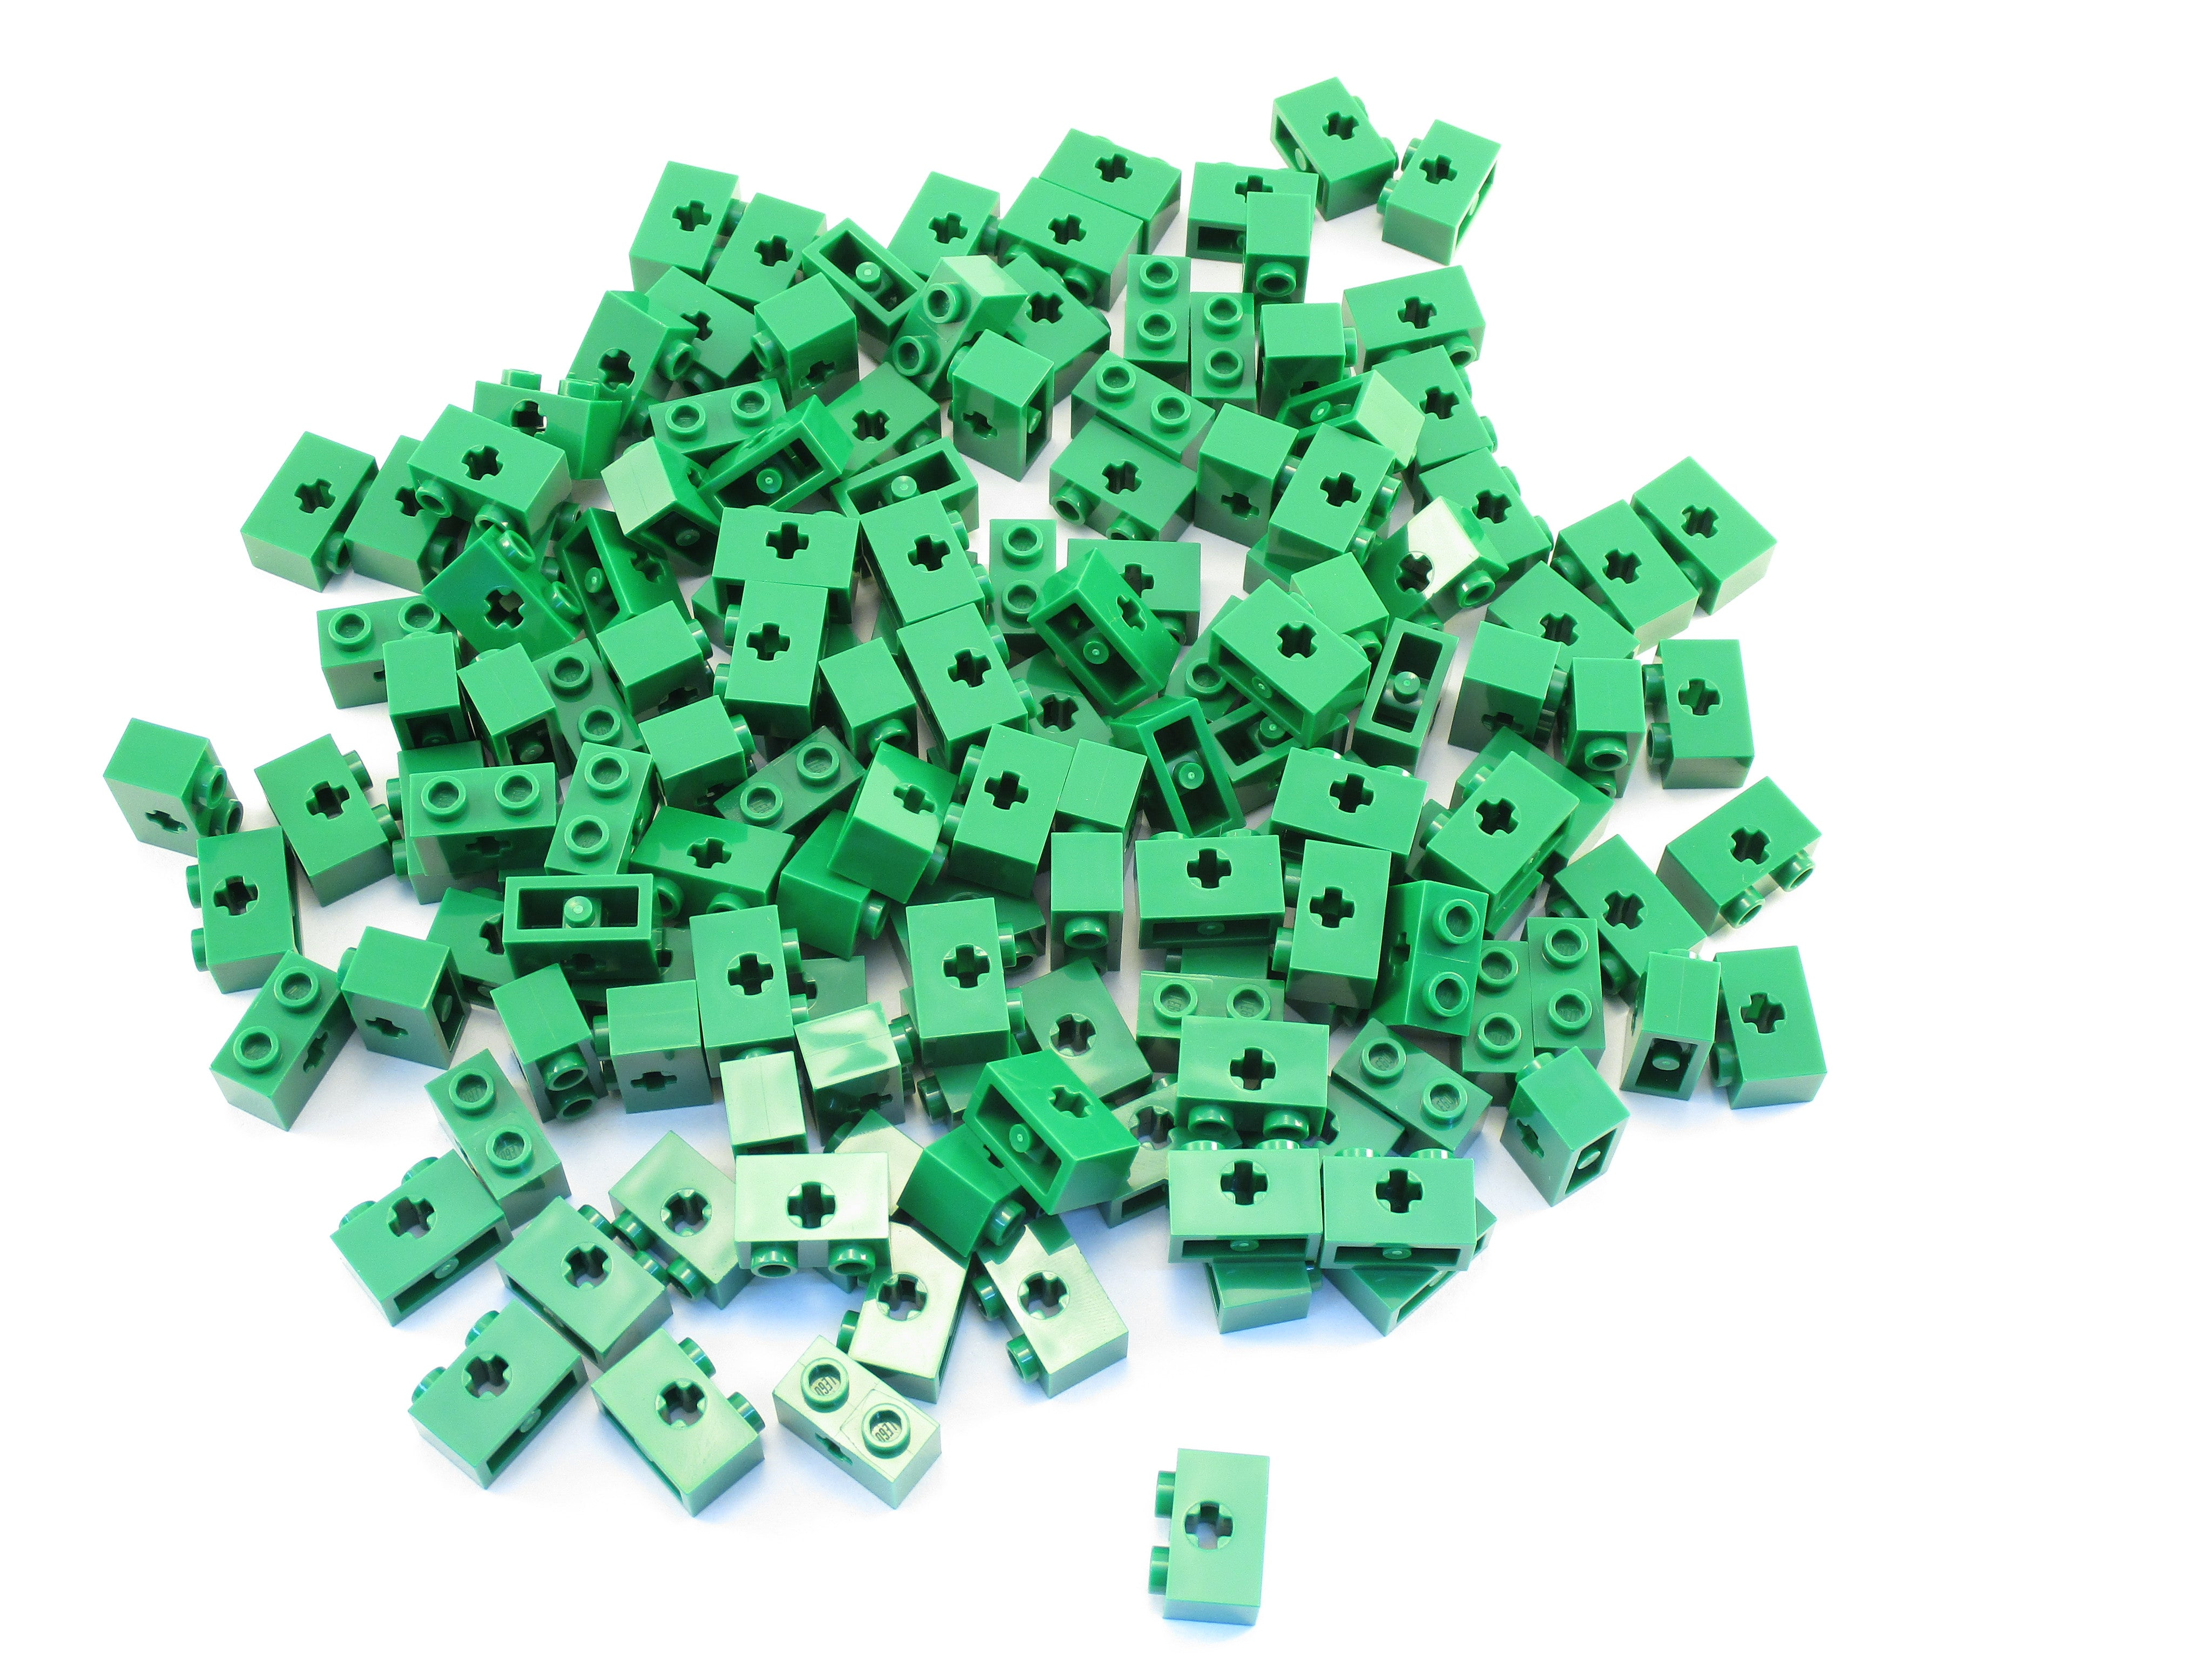 LEGO Green Technic Brick 1x2 with Axle Hole Lot of 100 Parts Pieces 32064